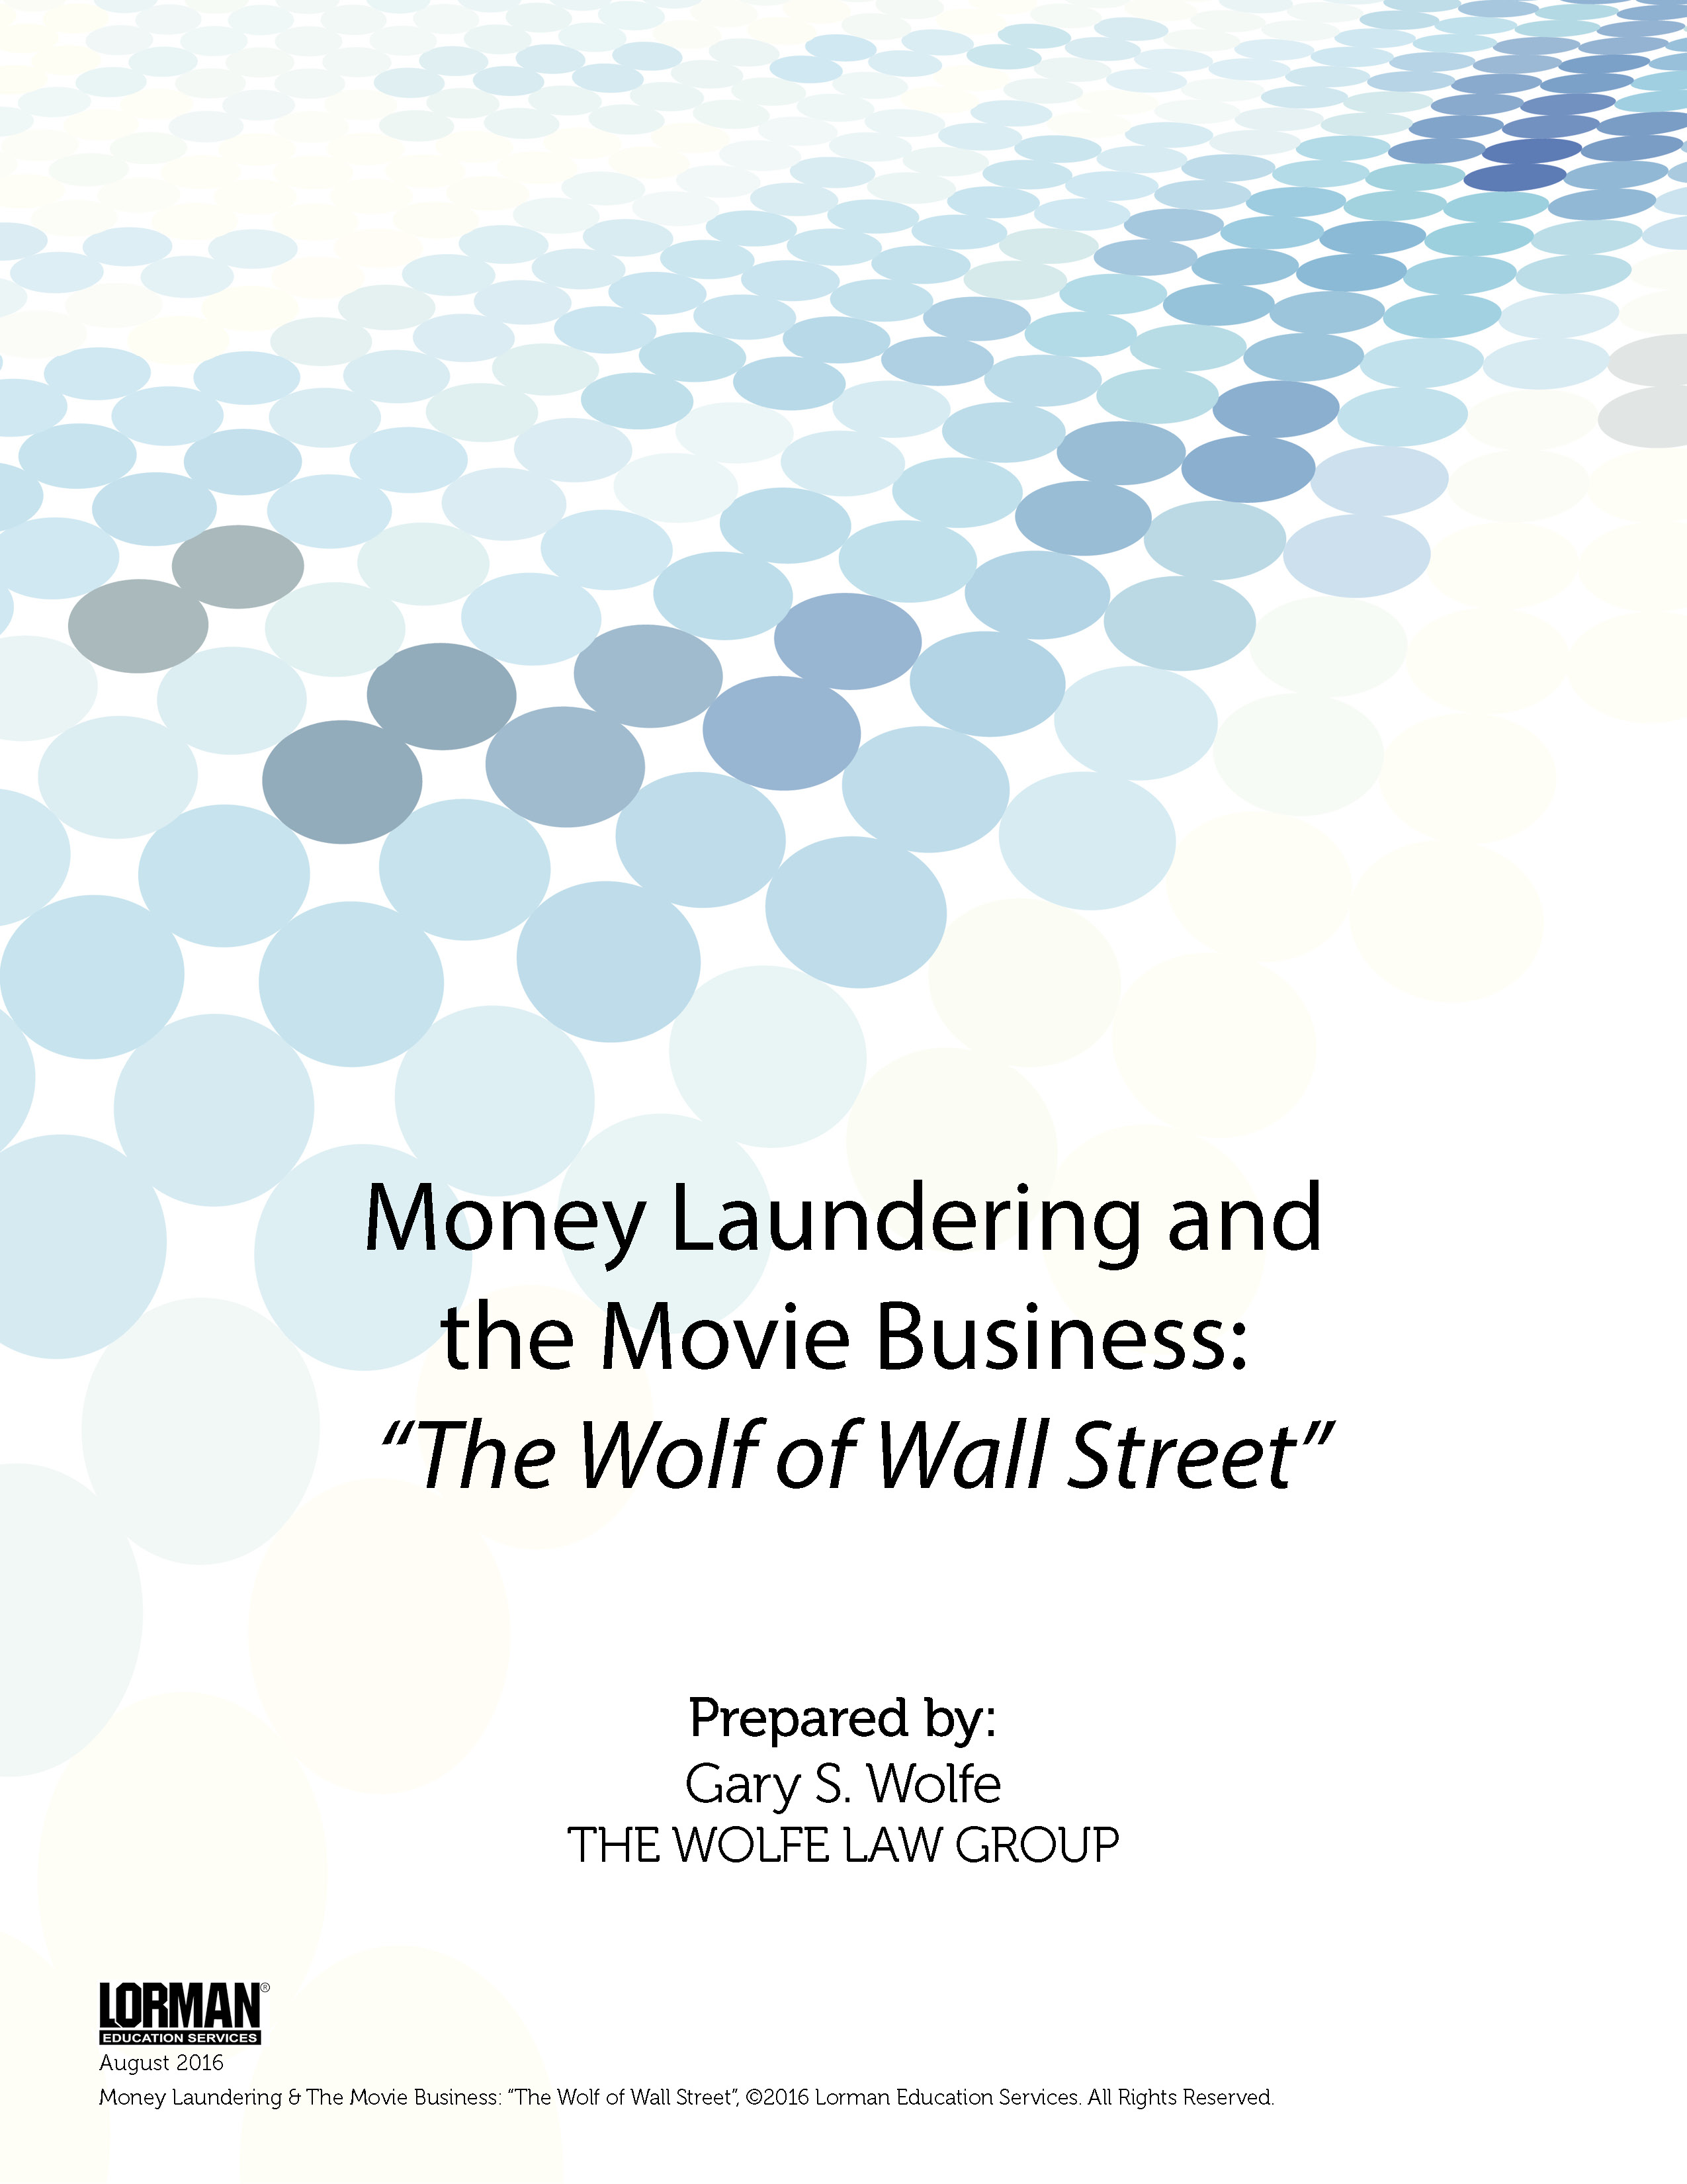 Money Laundering & The Movie Business - The Wolf of Wall Street